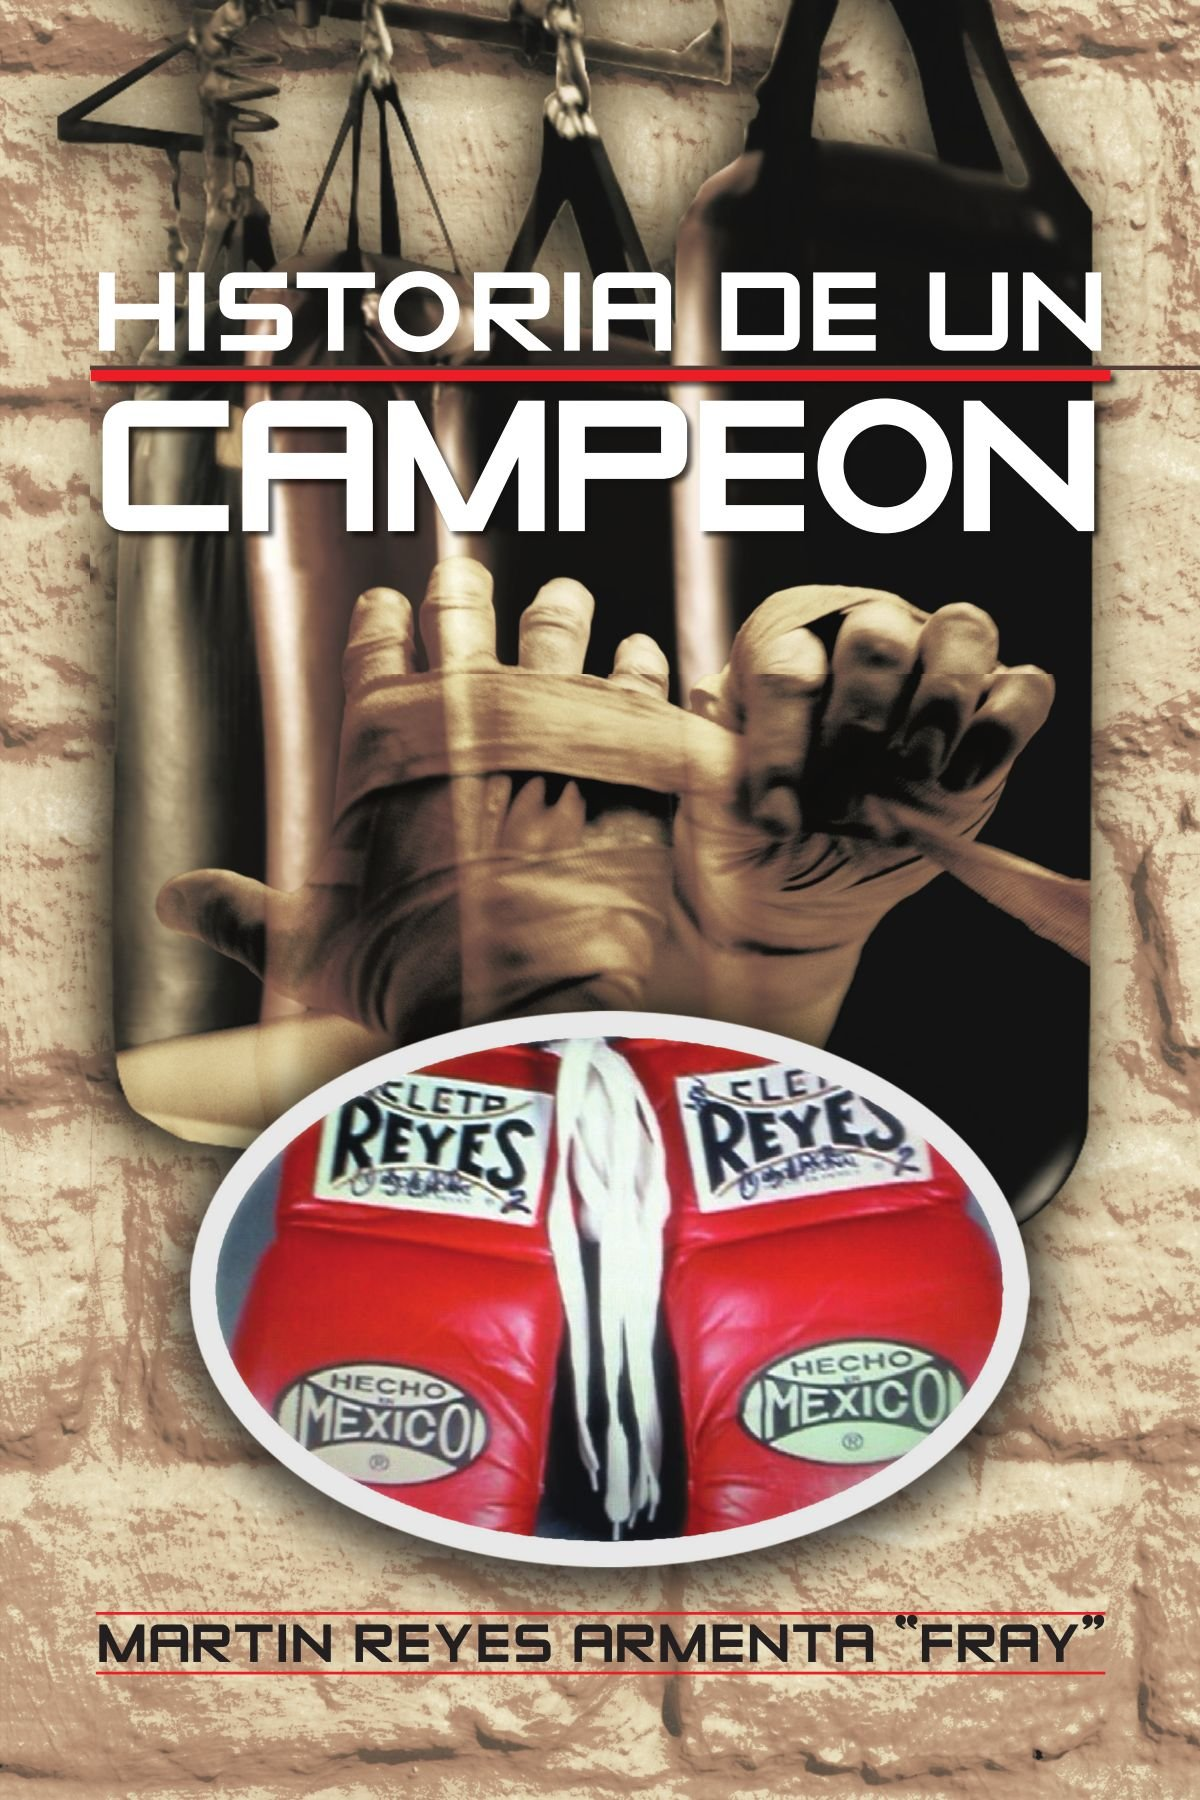 Historia de un campeon (Spanish Edition) (Spanish) Paperback – September 26, 2011